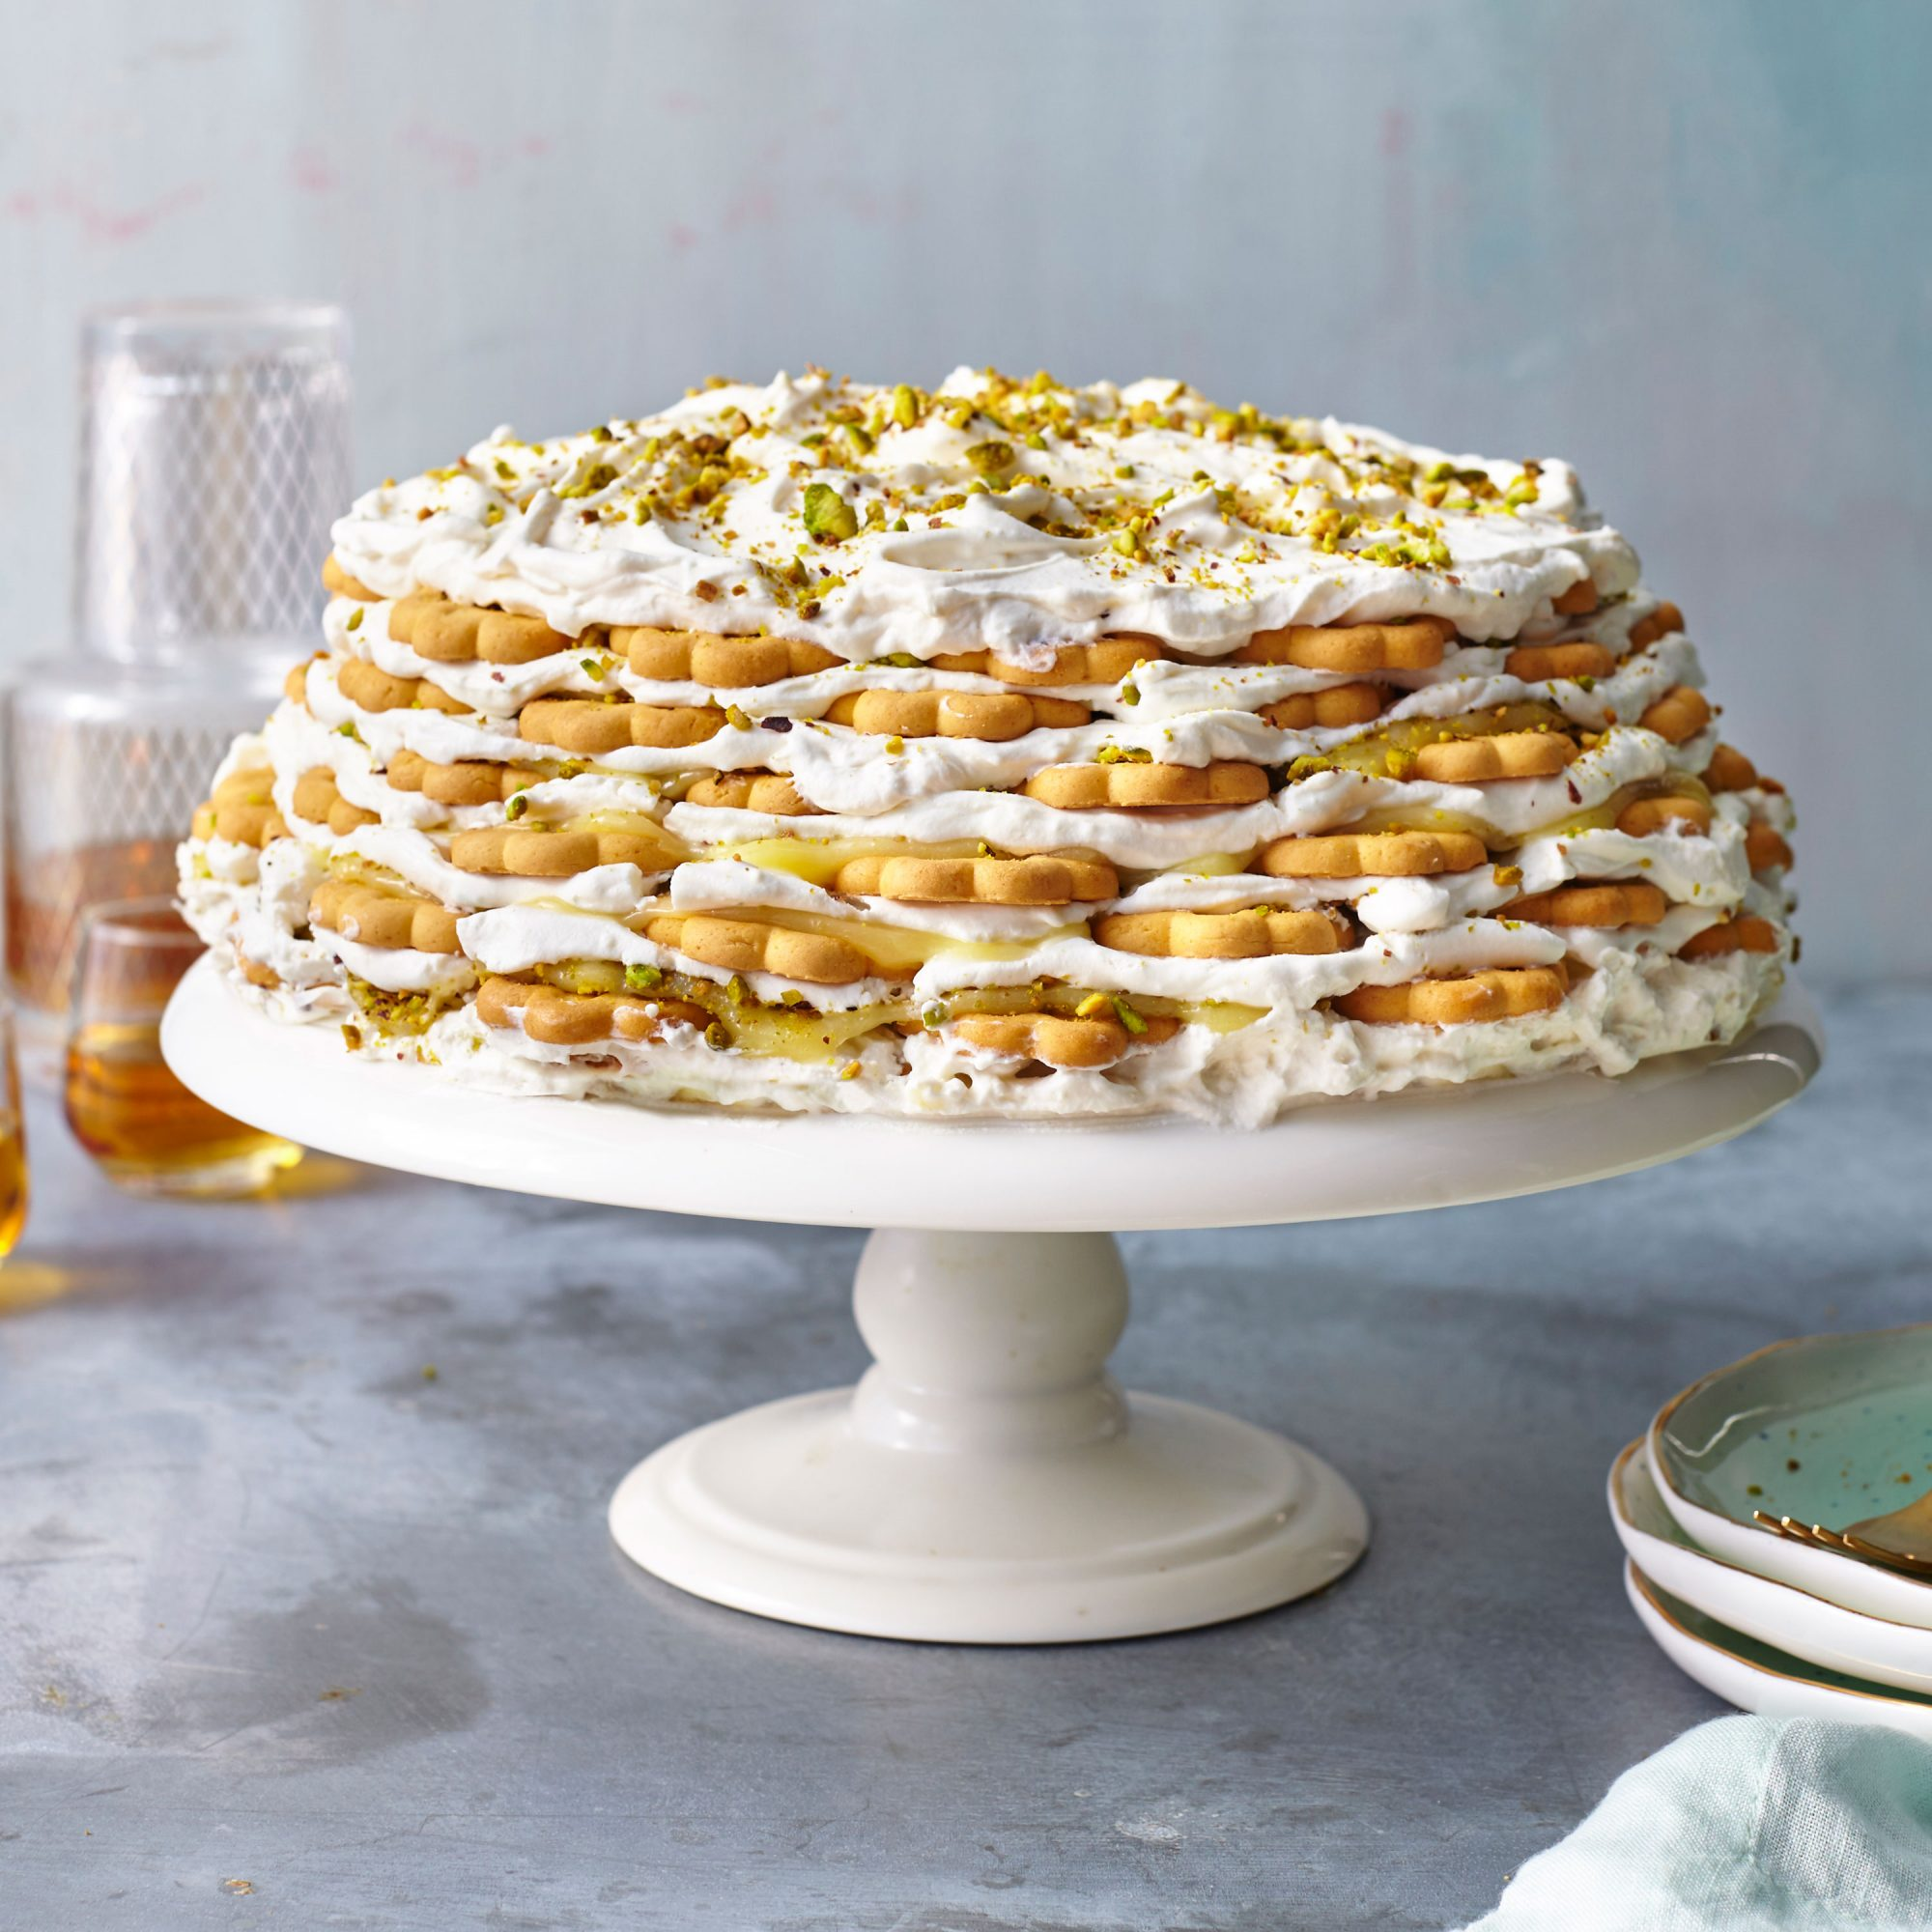 Key Lime-Shortbread Icebox Cake image